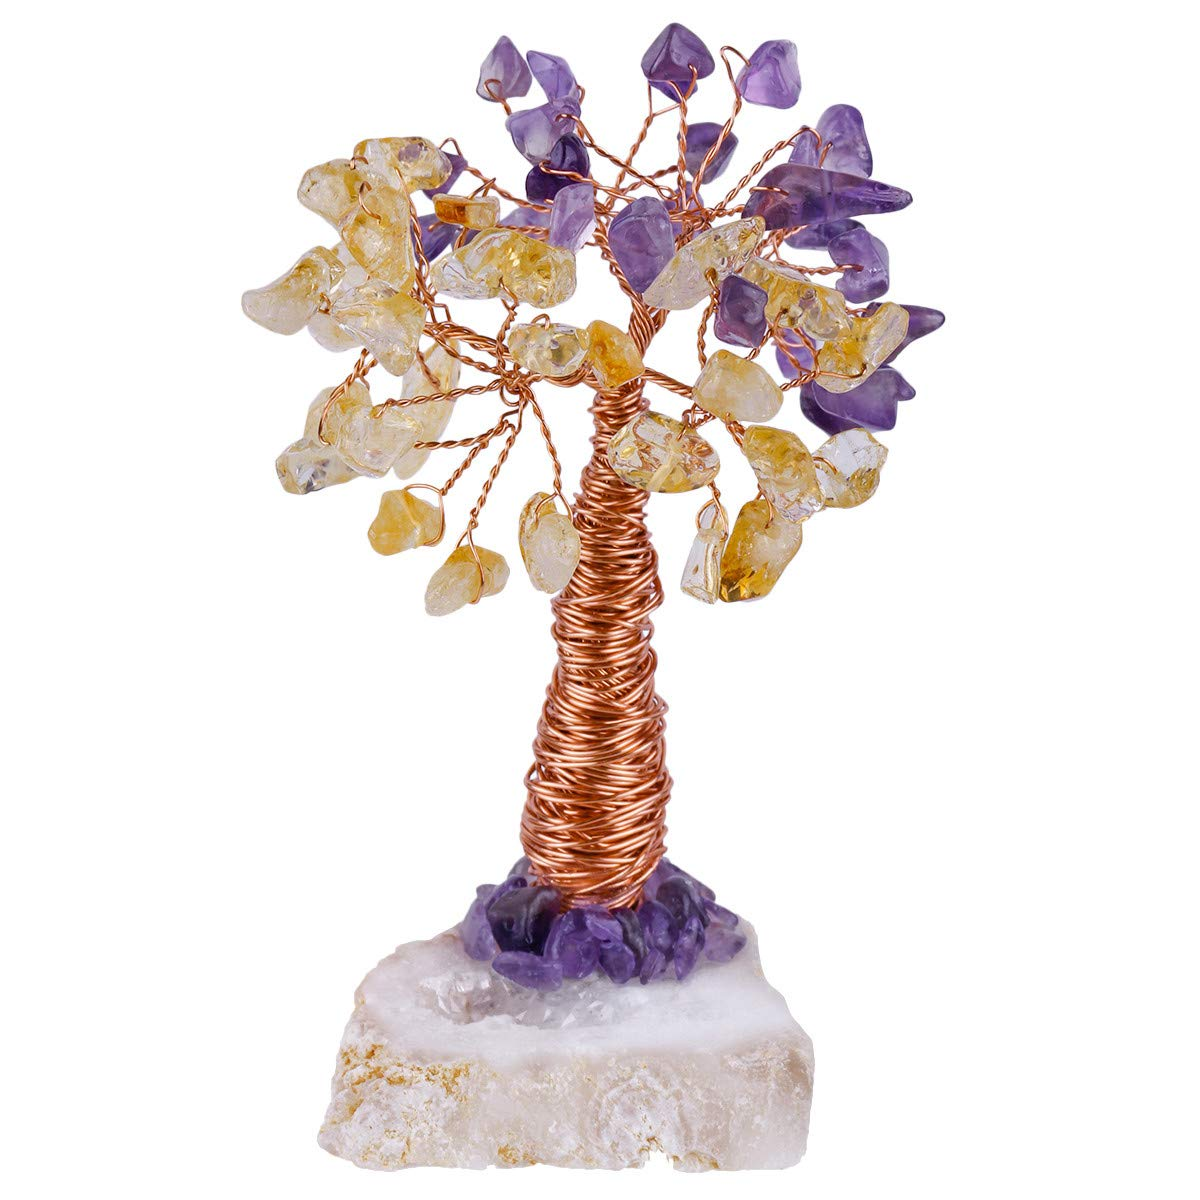 Amethyst Crystal Money Tree Cluster Base Bonsai Wealth and Luck Home Decoration